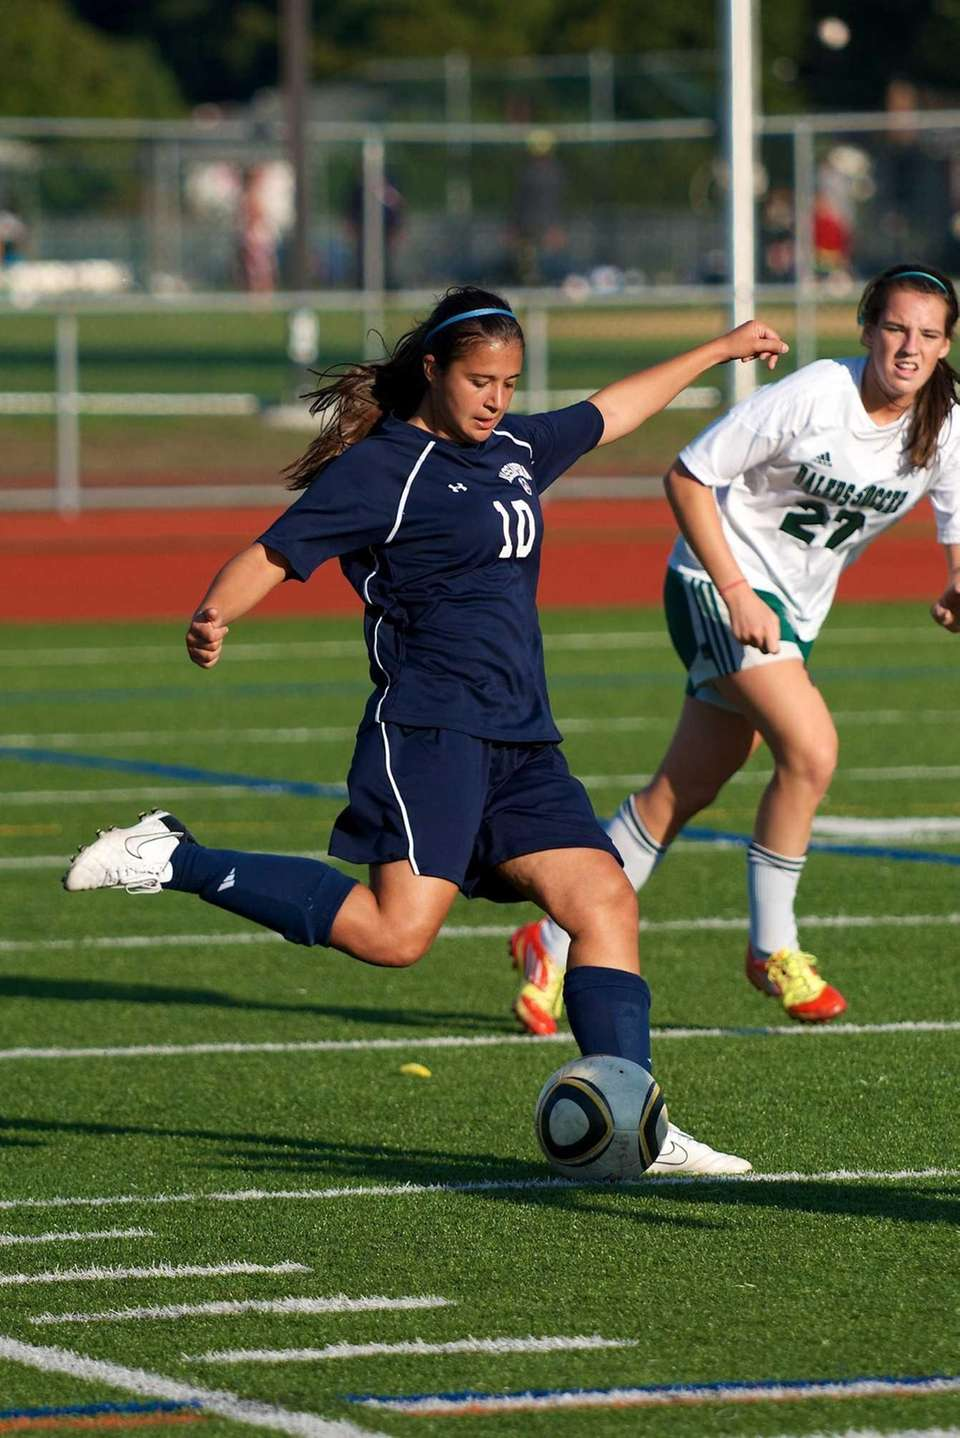 Massapequa senior Erica Modena sends the ball toward